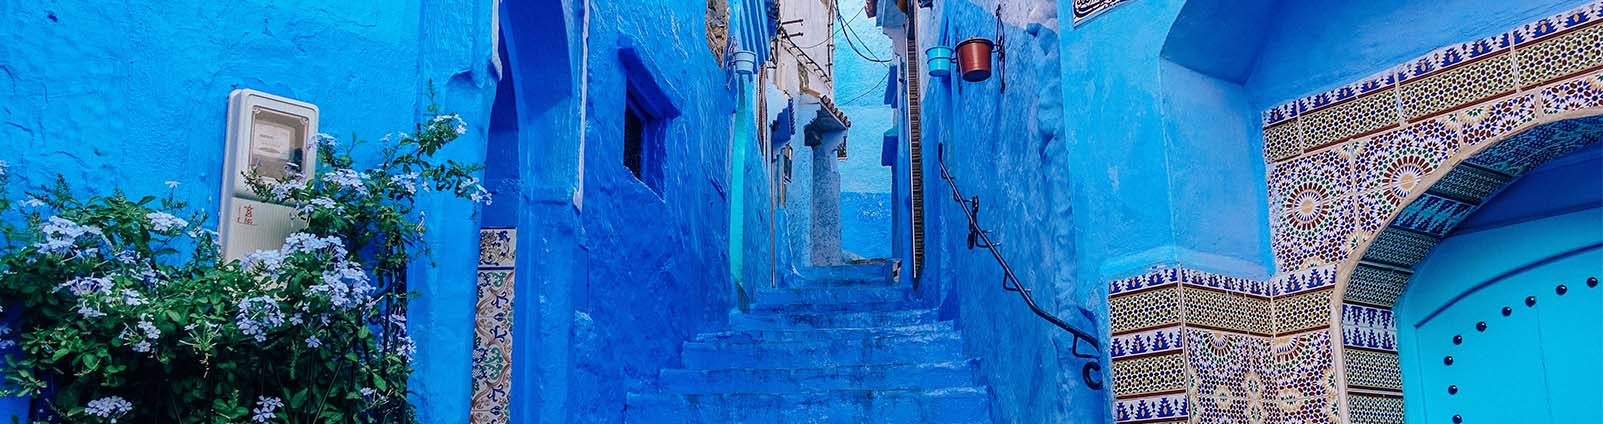 Terres et voyages, travel agency Morrocco